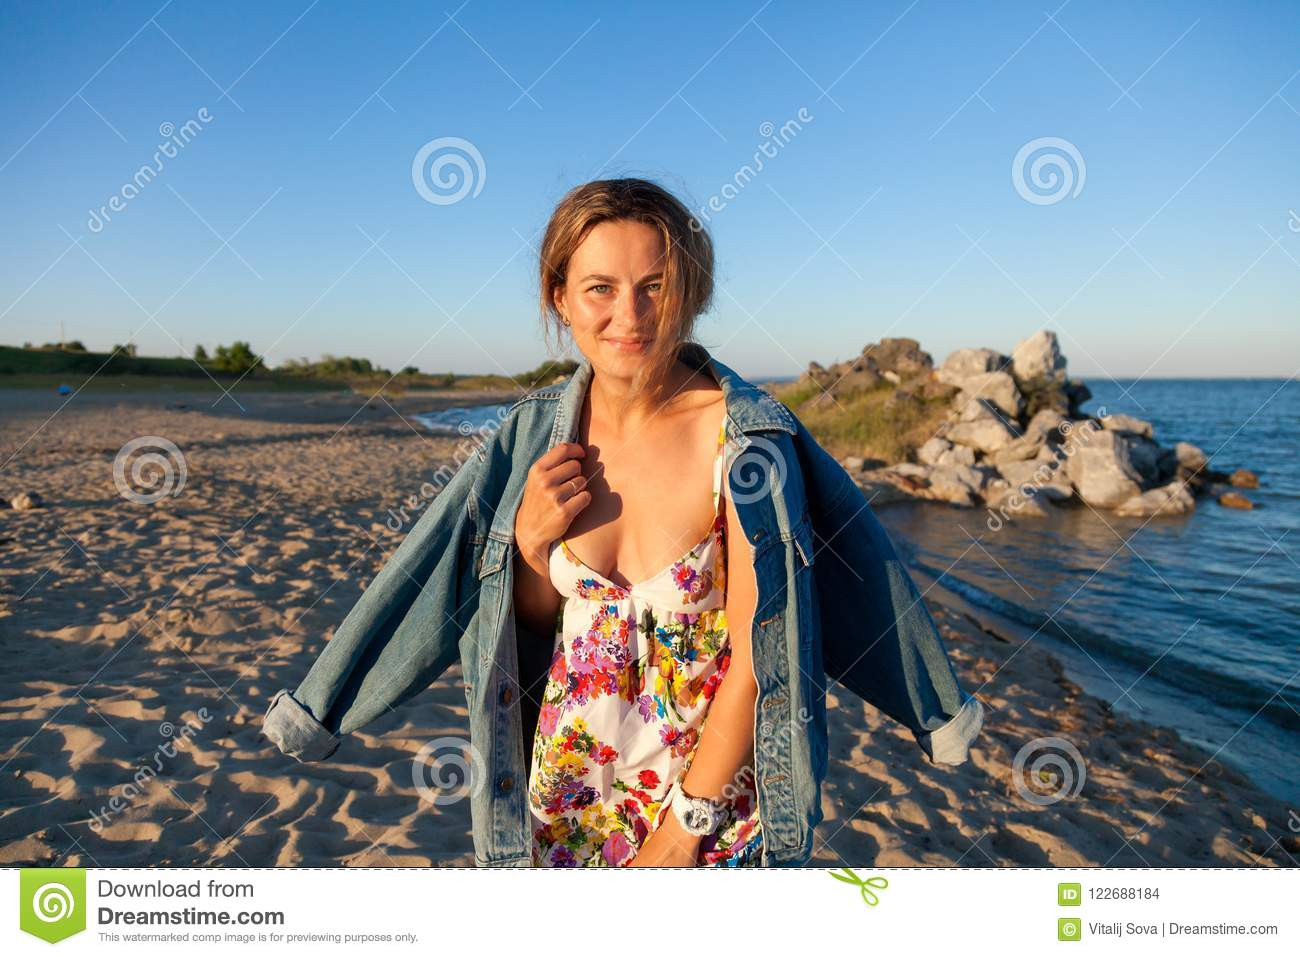 A cheerful dark-haired woman in the colored thread and denim jacket smiles, walks along the beach and enjoys the bright sun on a